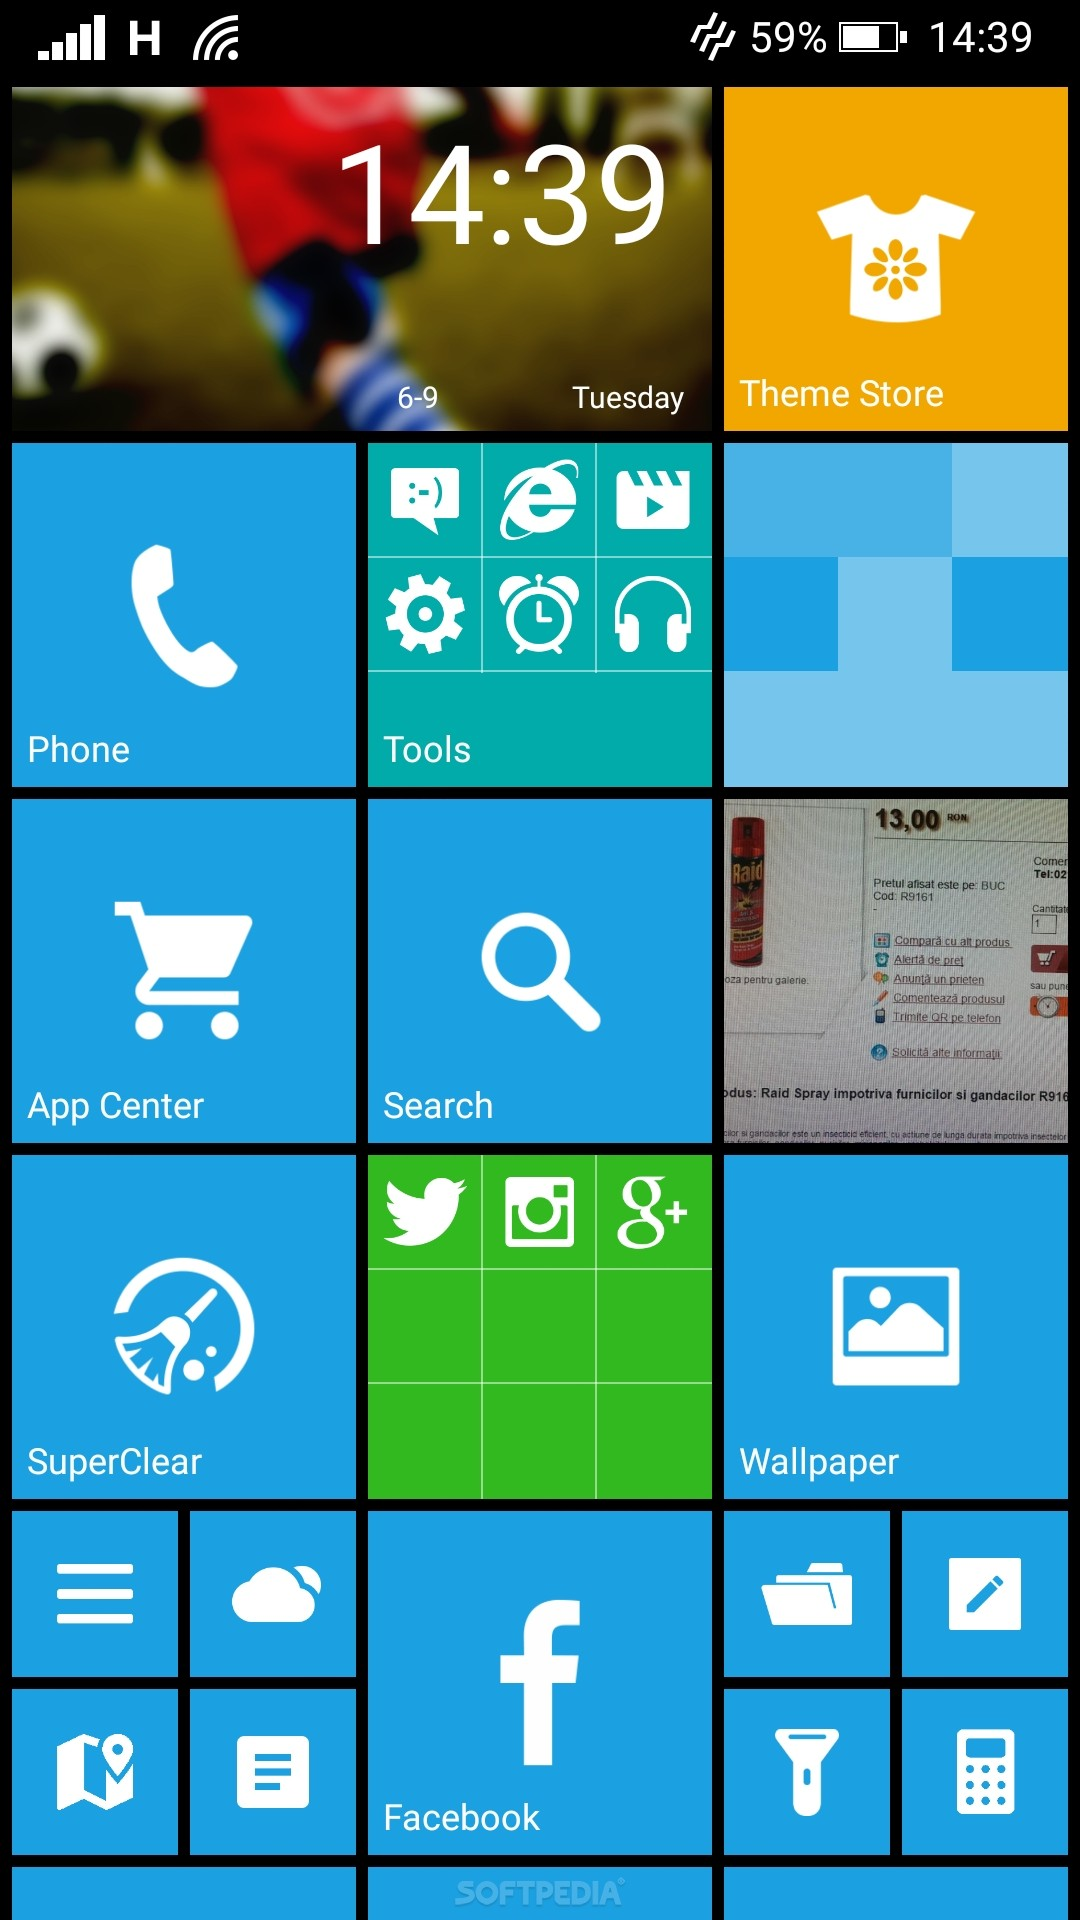 Nokia Lumia Launcher : nokia, lumia, launcher, Launcher, Brings, Windows, Phone, Android, Device